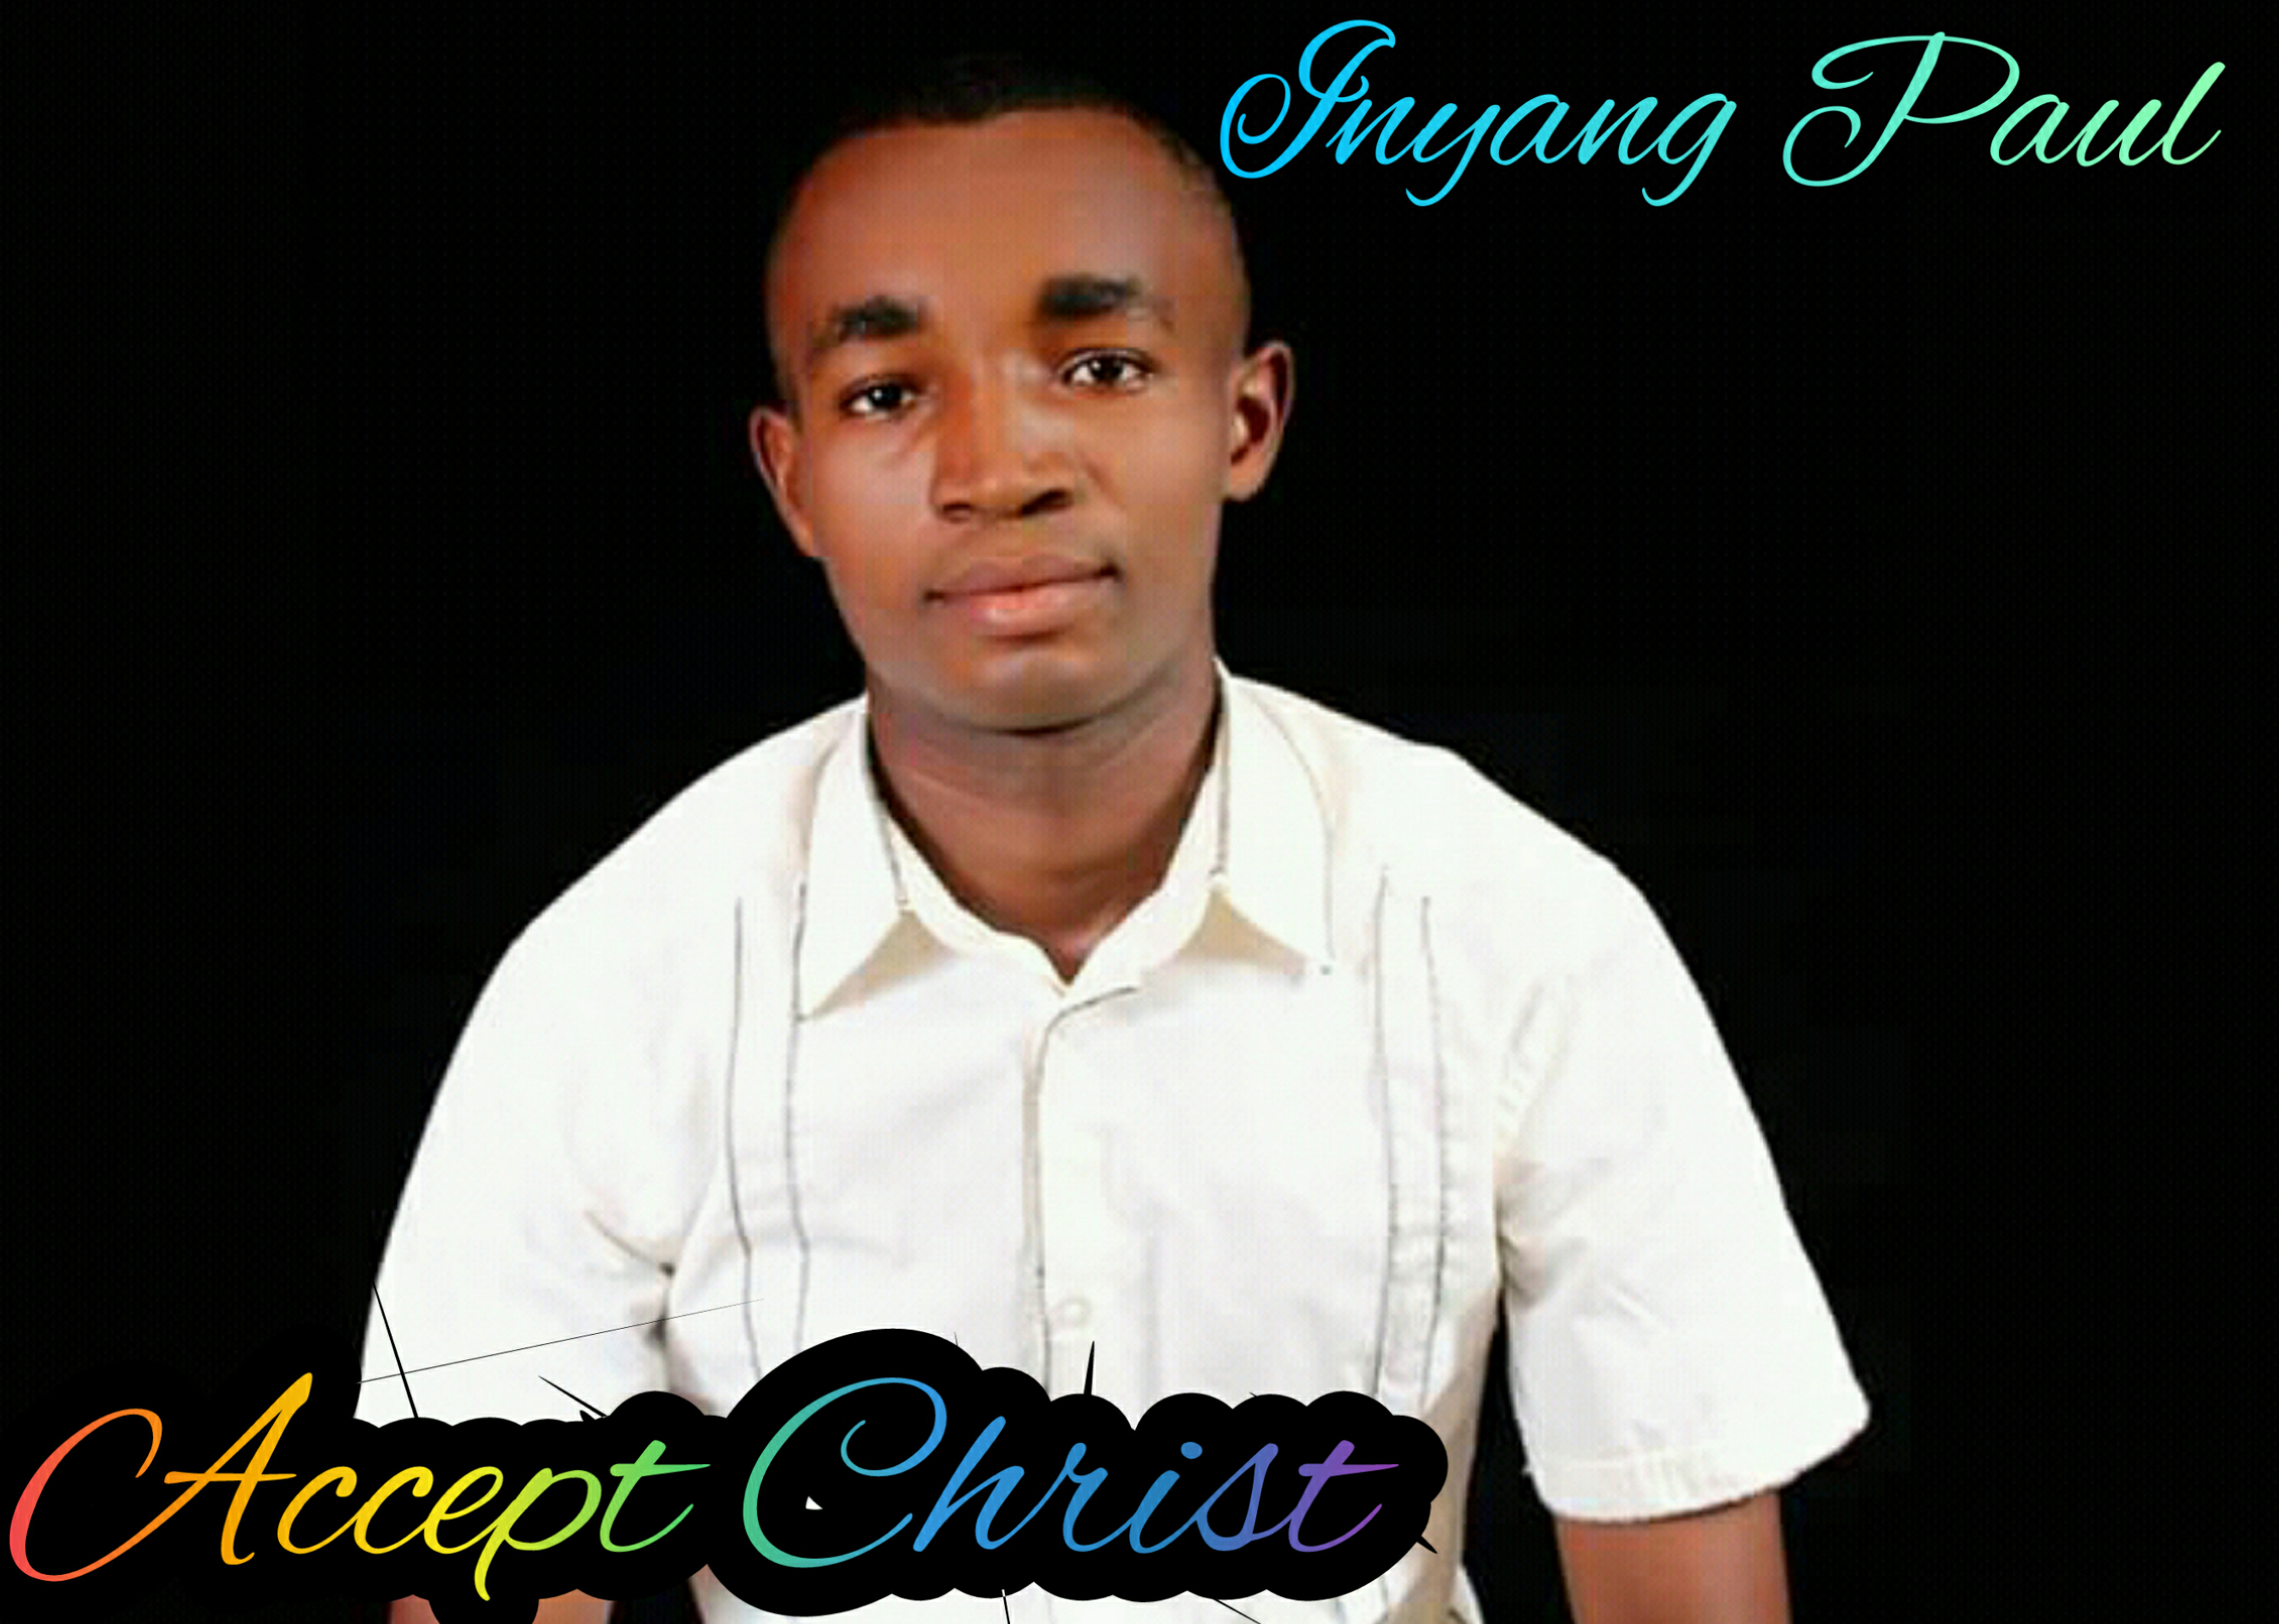 ACCEPT CHRIST (Evangelical Anthem) - Inyang Paul